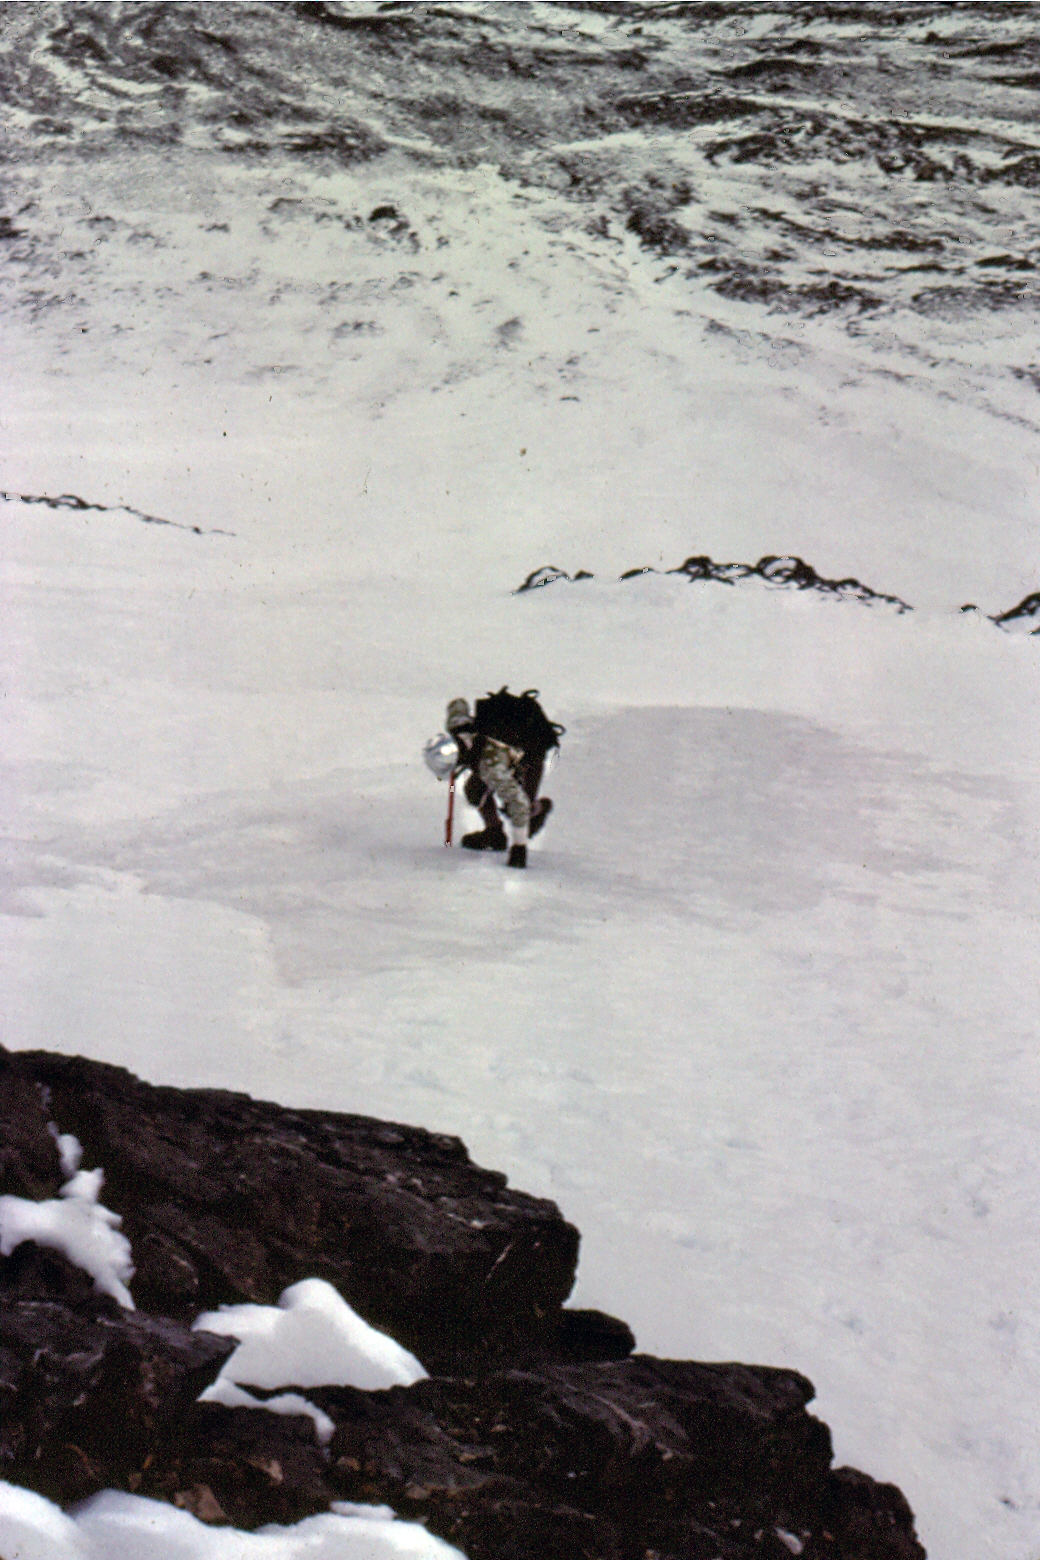 Mike Weber showing off his French technique on the lower ice fields of Mt Borah. If you look closely, you can see the old blue ice showing in places.  Bob BoylesBob Boyles photo